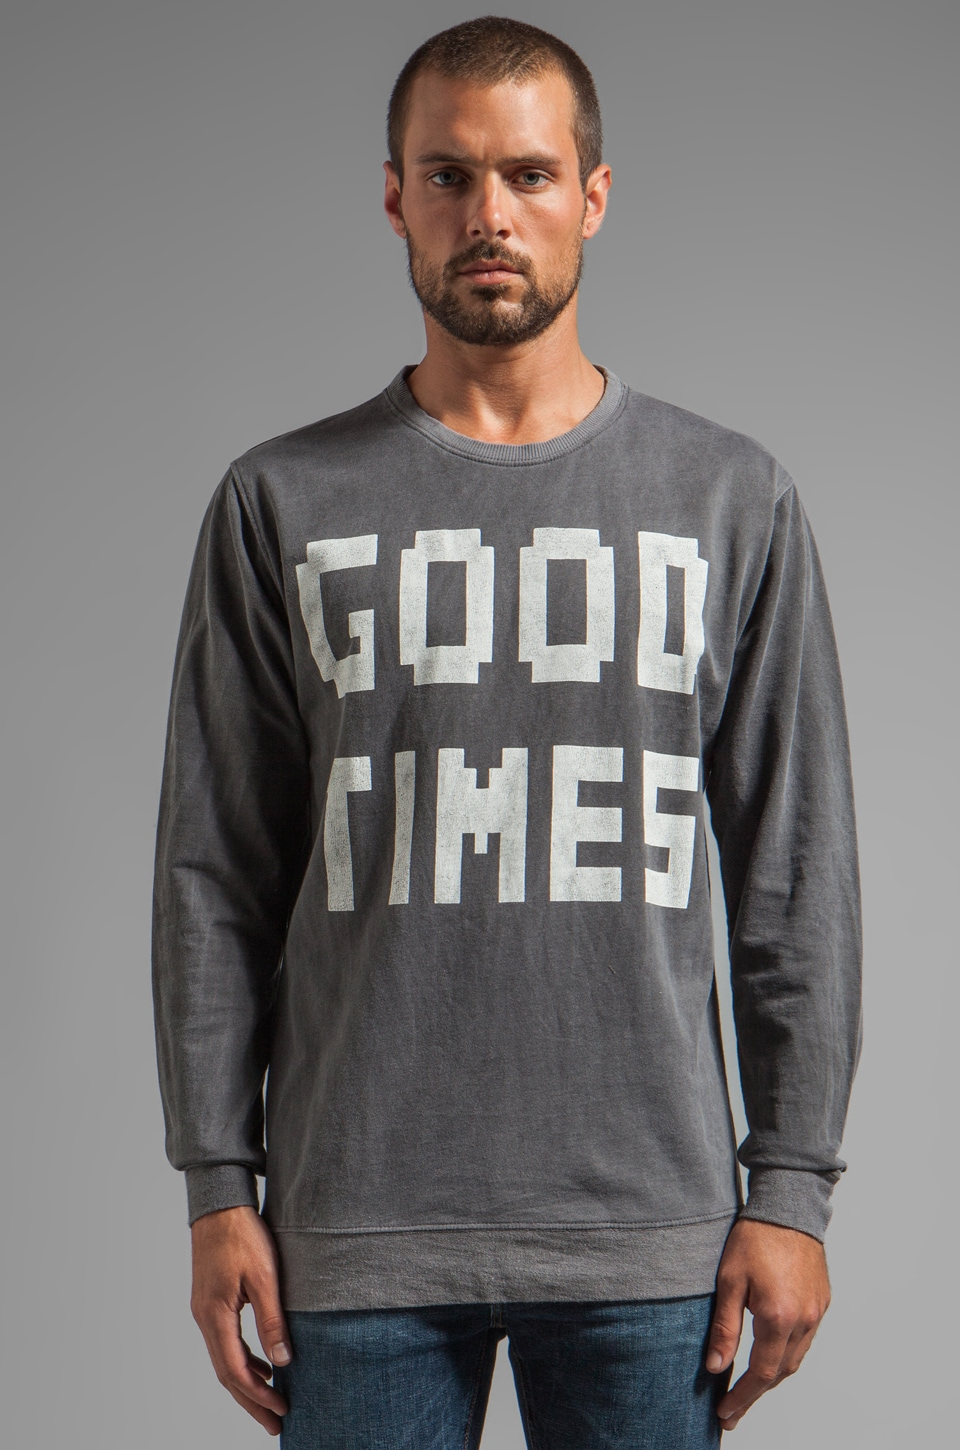 INSTED WE SMILE Good Times Jumper in Gun Metal Grey